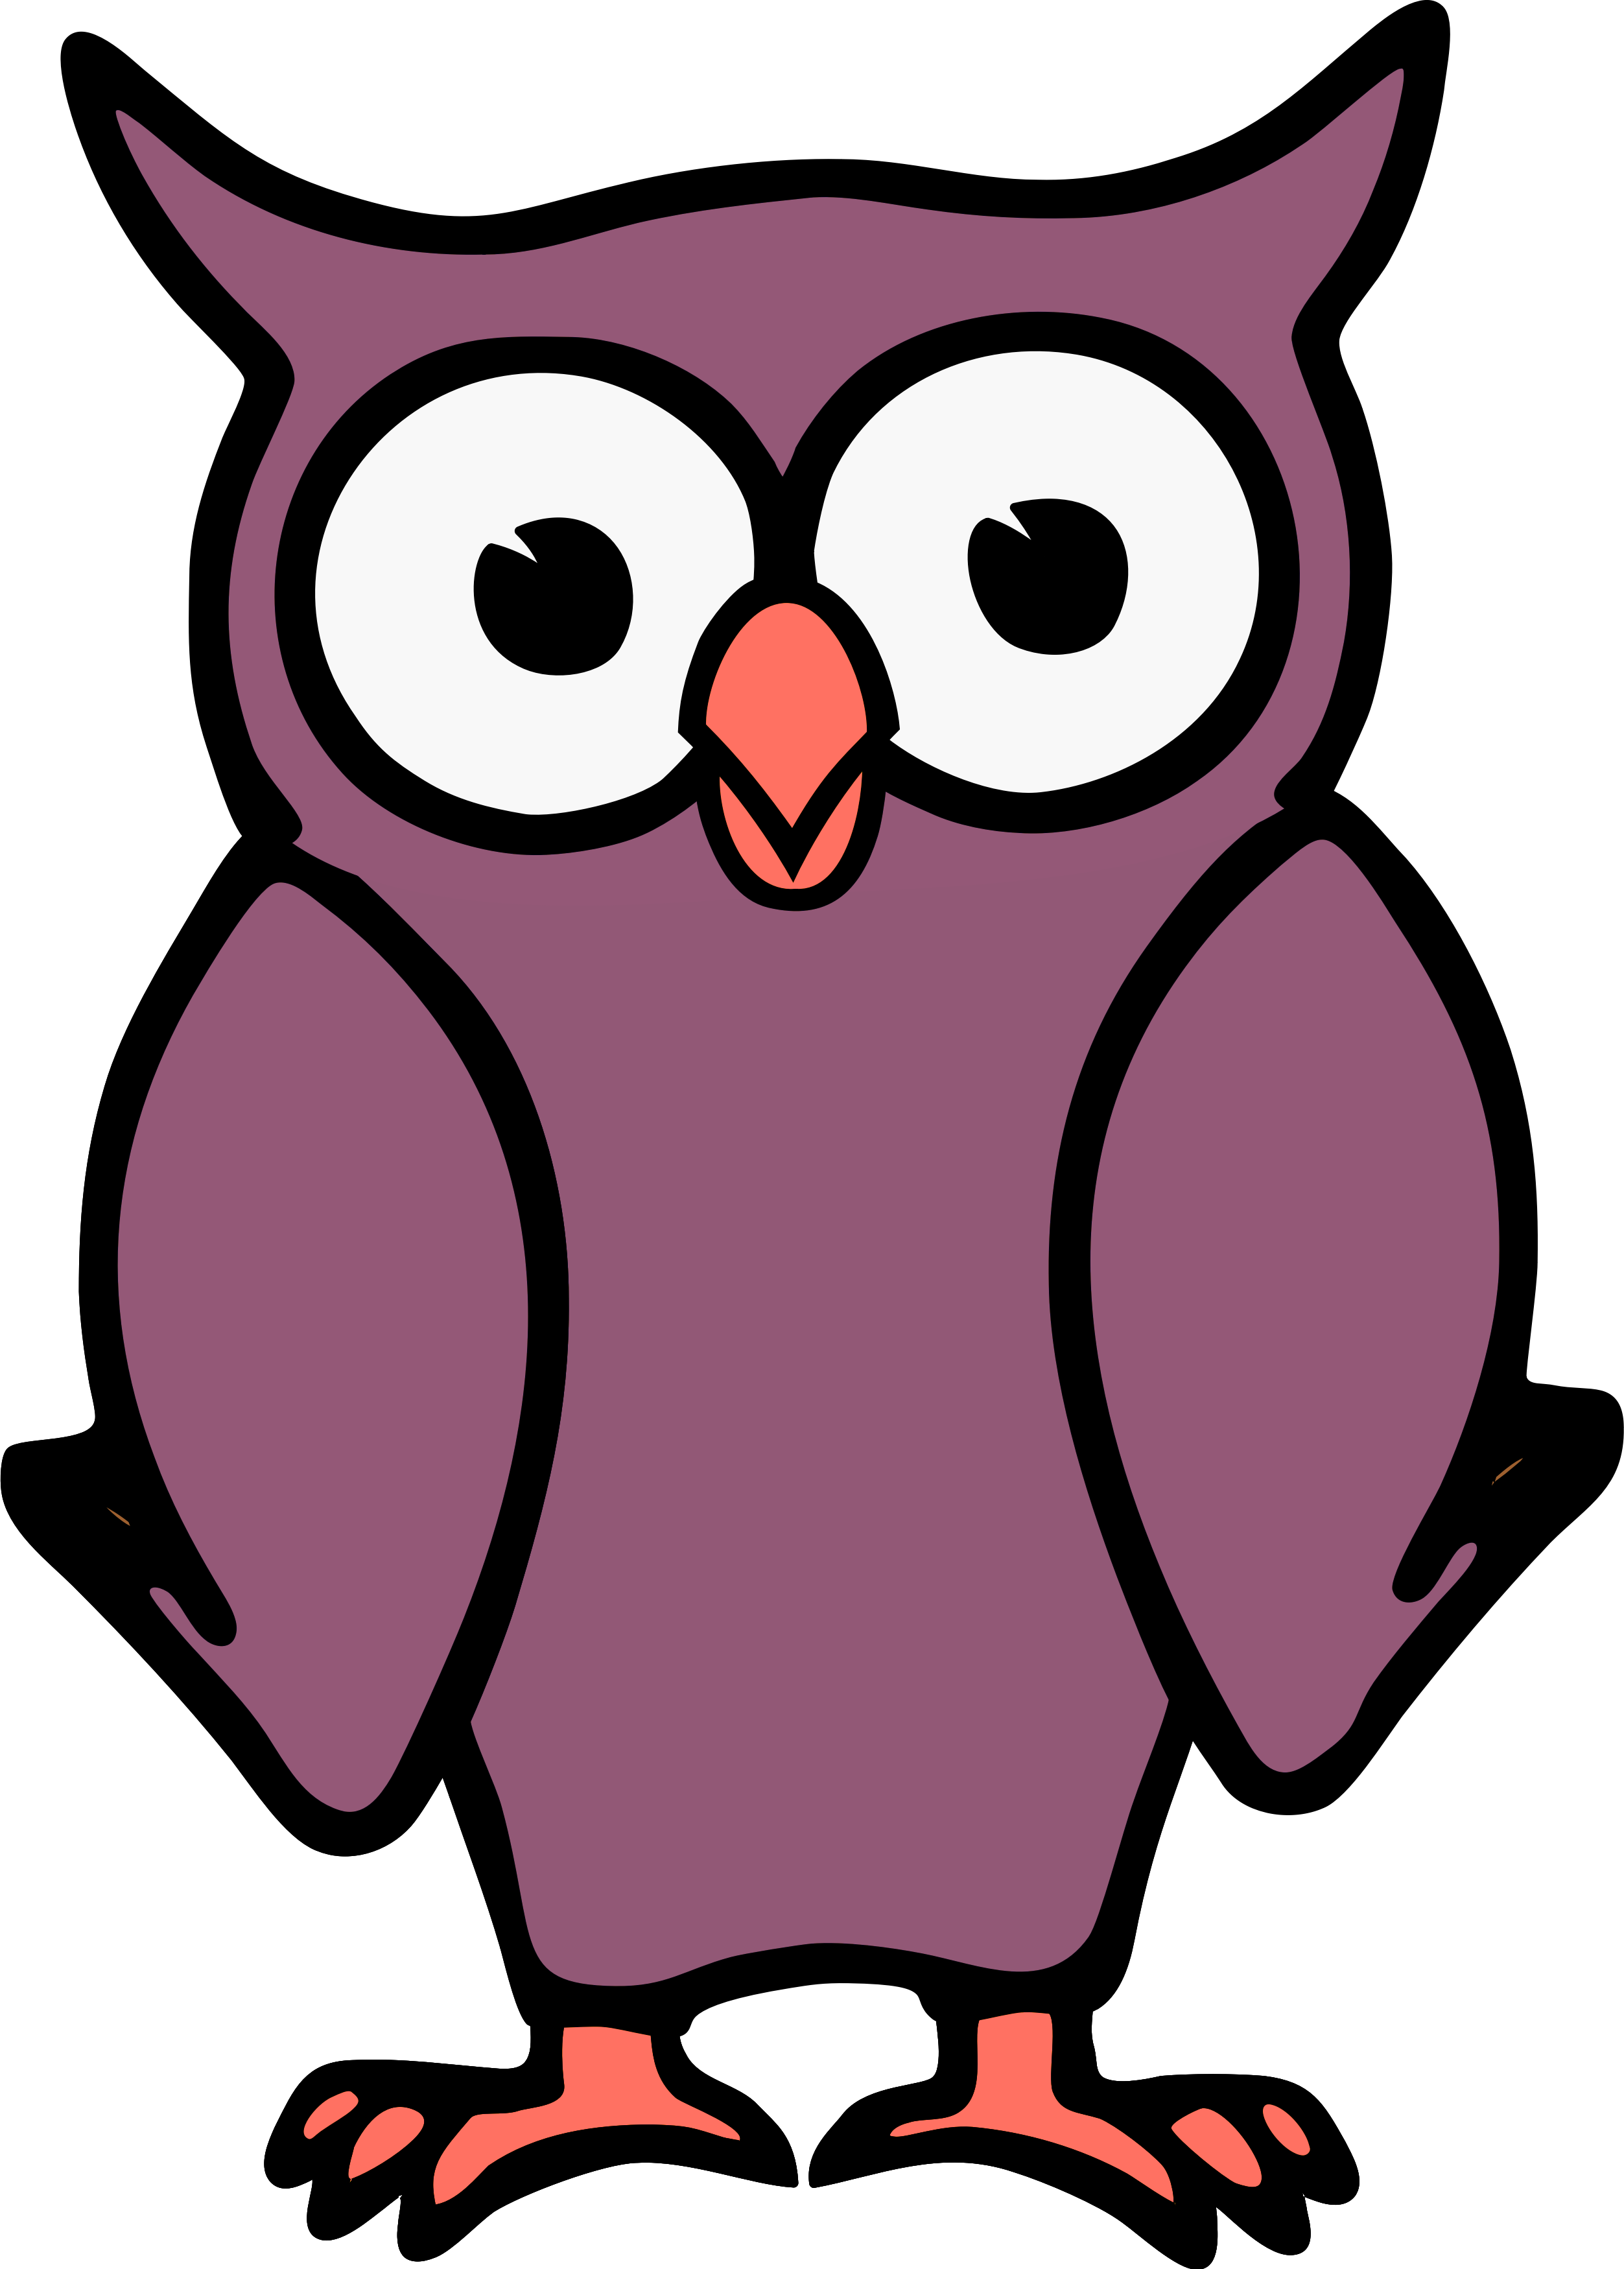 Design clipart owl. Cartoon image id png